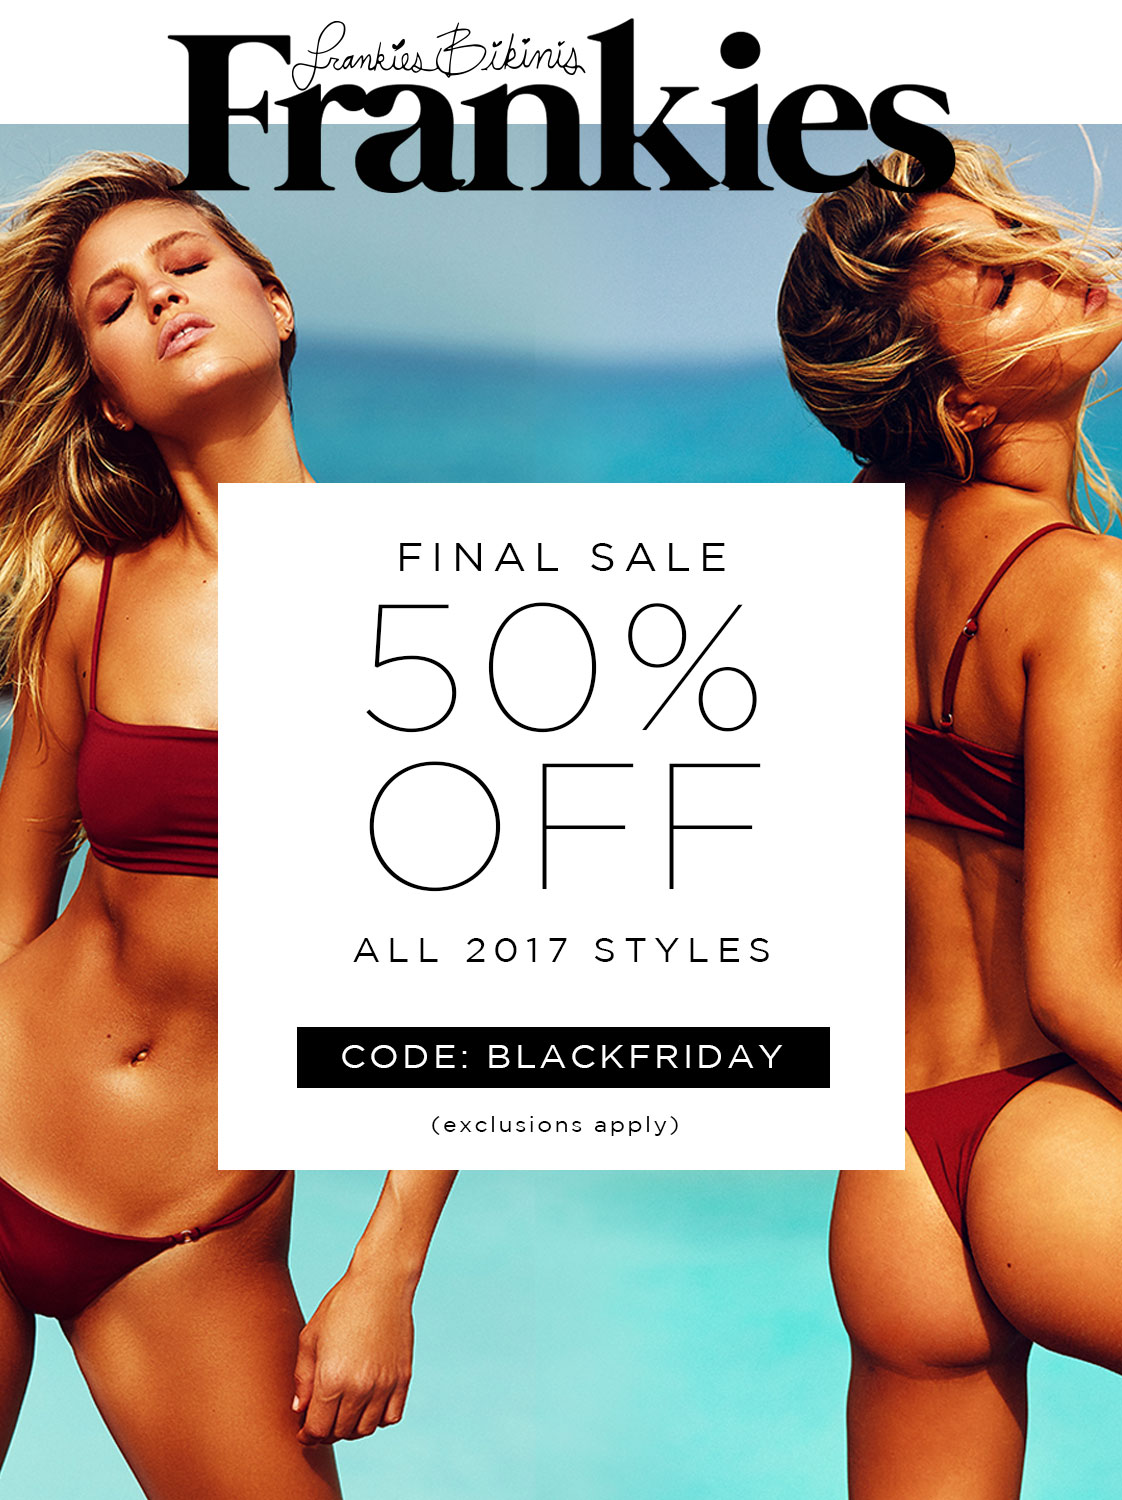 5c6556660c8d4 Black Friday starts NOW! Take 50% Off + enjoy Free Shipping on all domestic  orders. Hurry, sale ends soon!